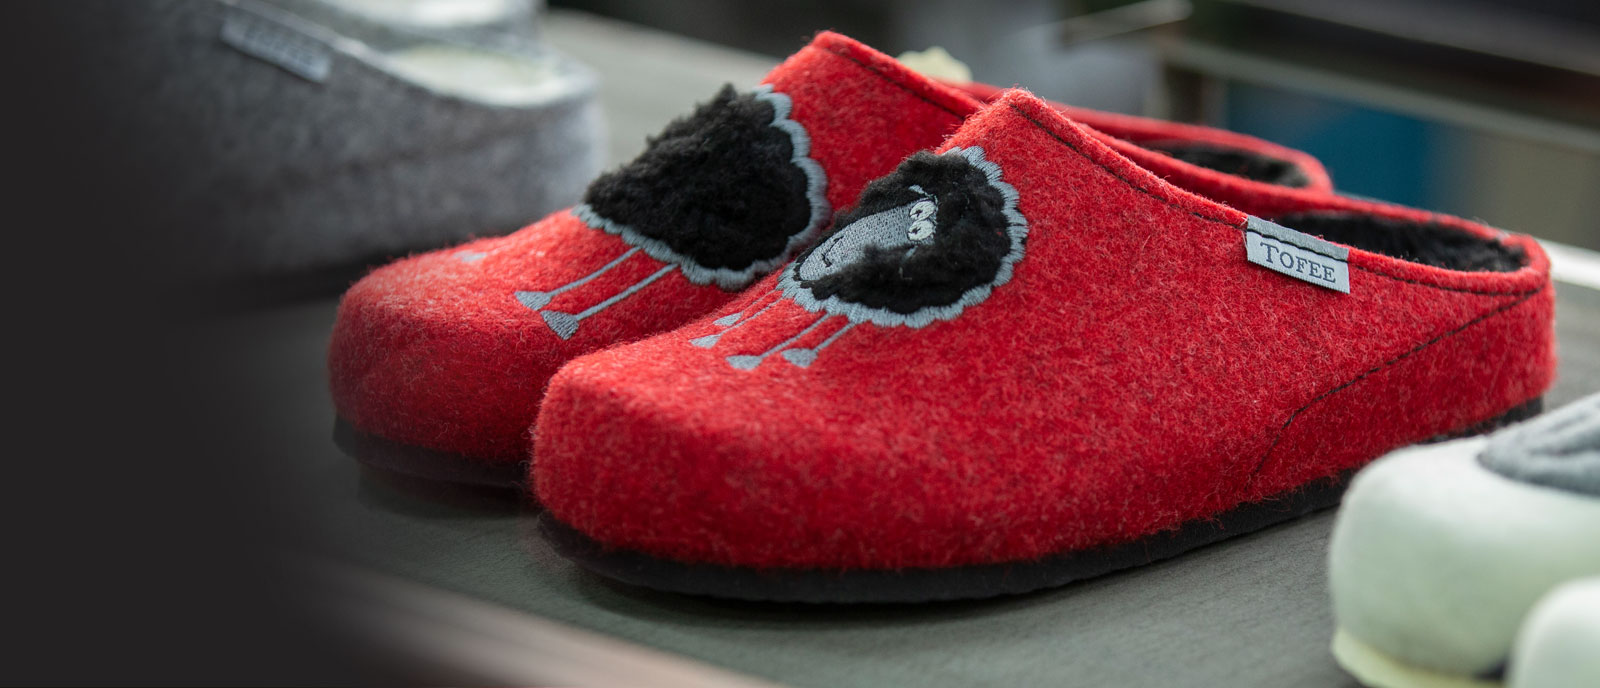 tofee about us banner home slippers